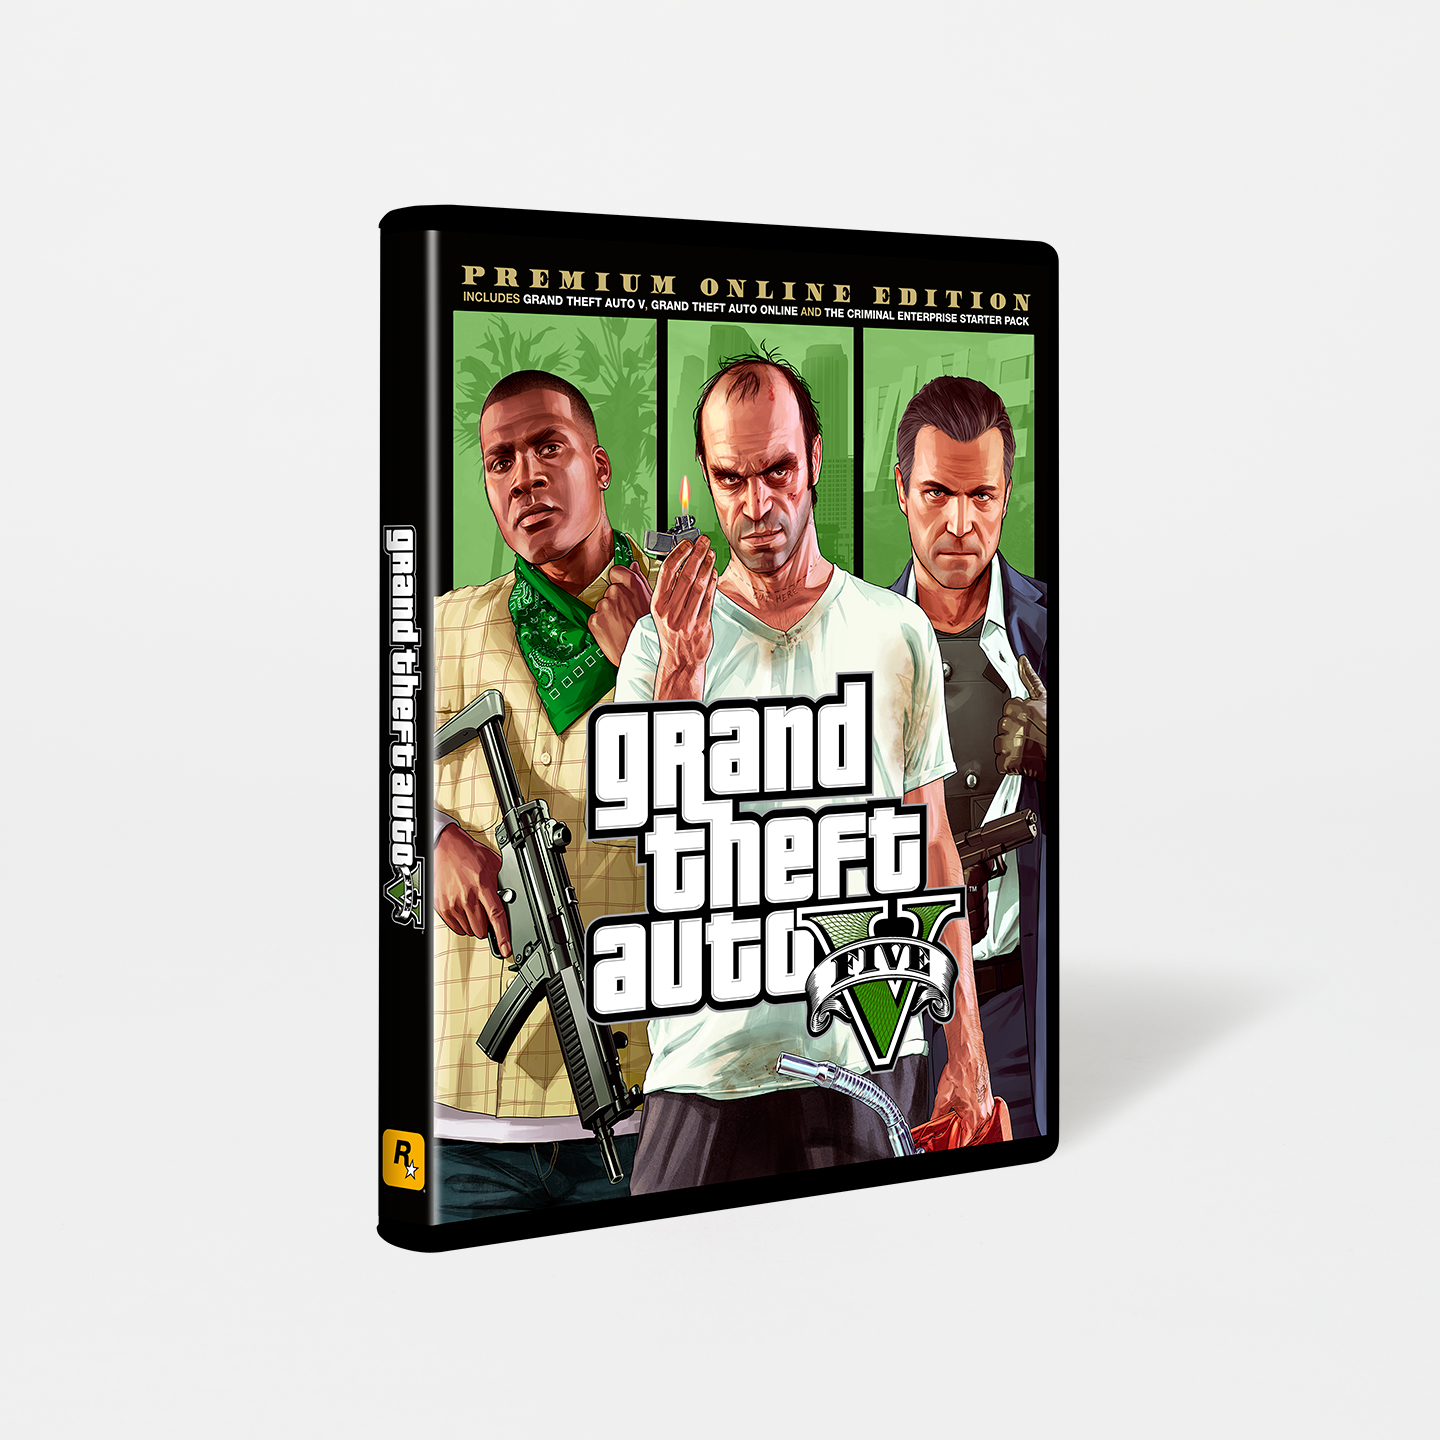 gta 1 free online game